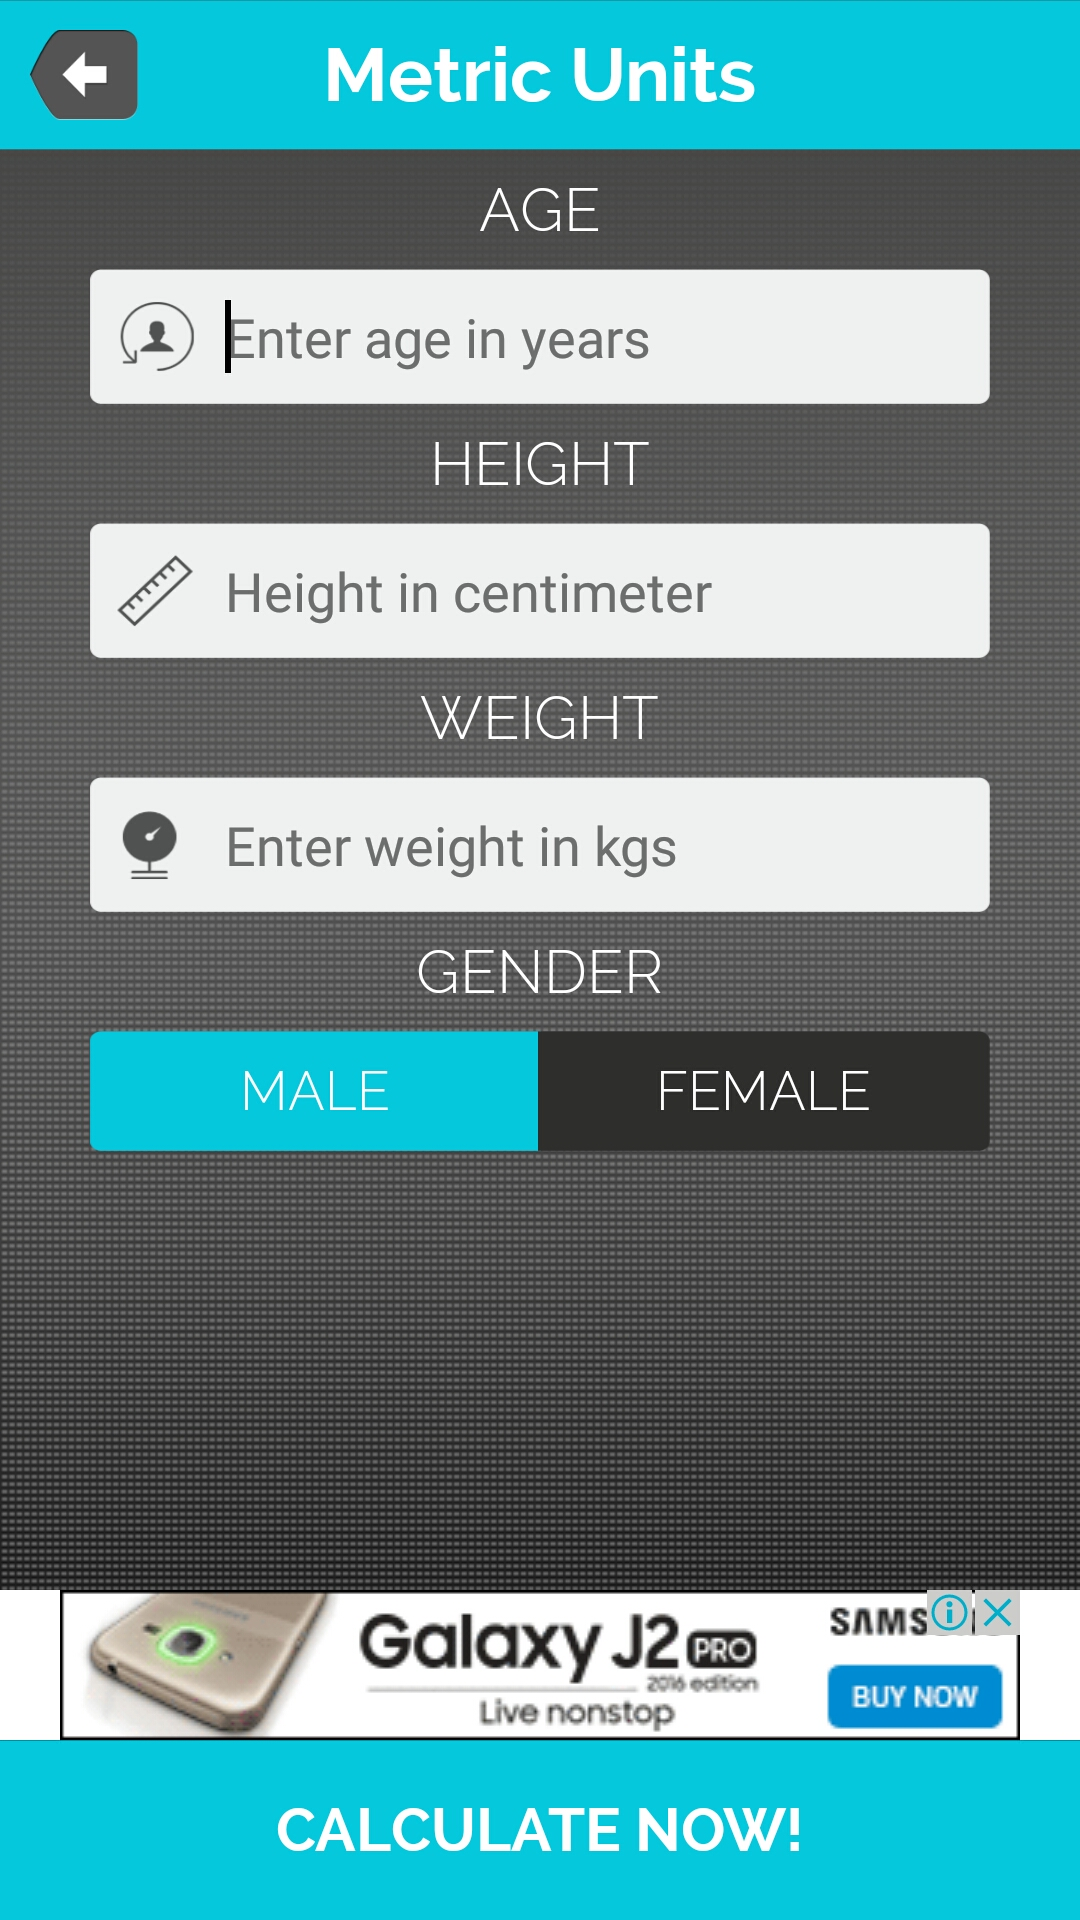 Bmi calculator for android full application with psd by bmi calculator for android full application with psd nvjuhfo Image collections